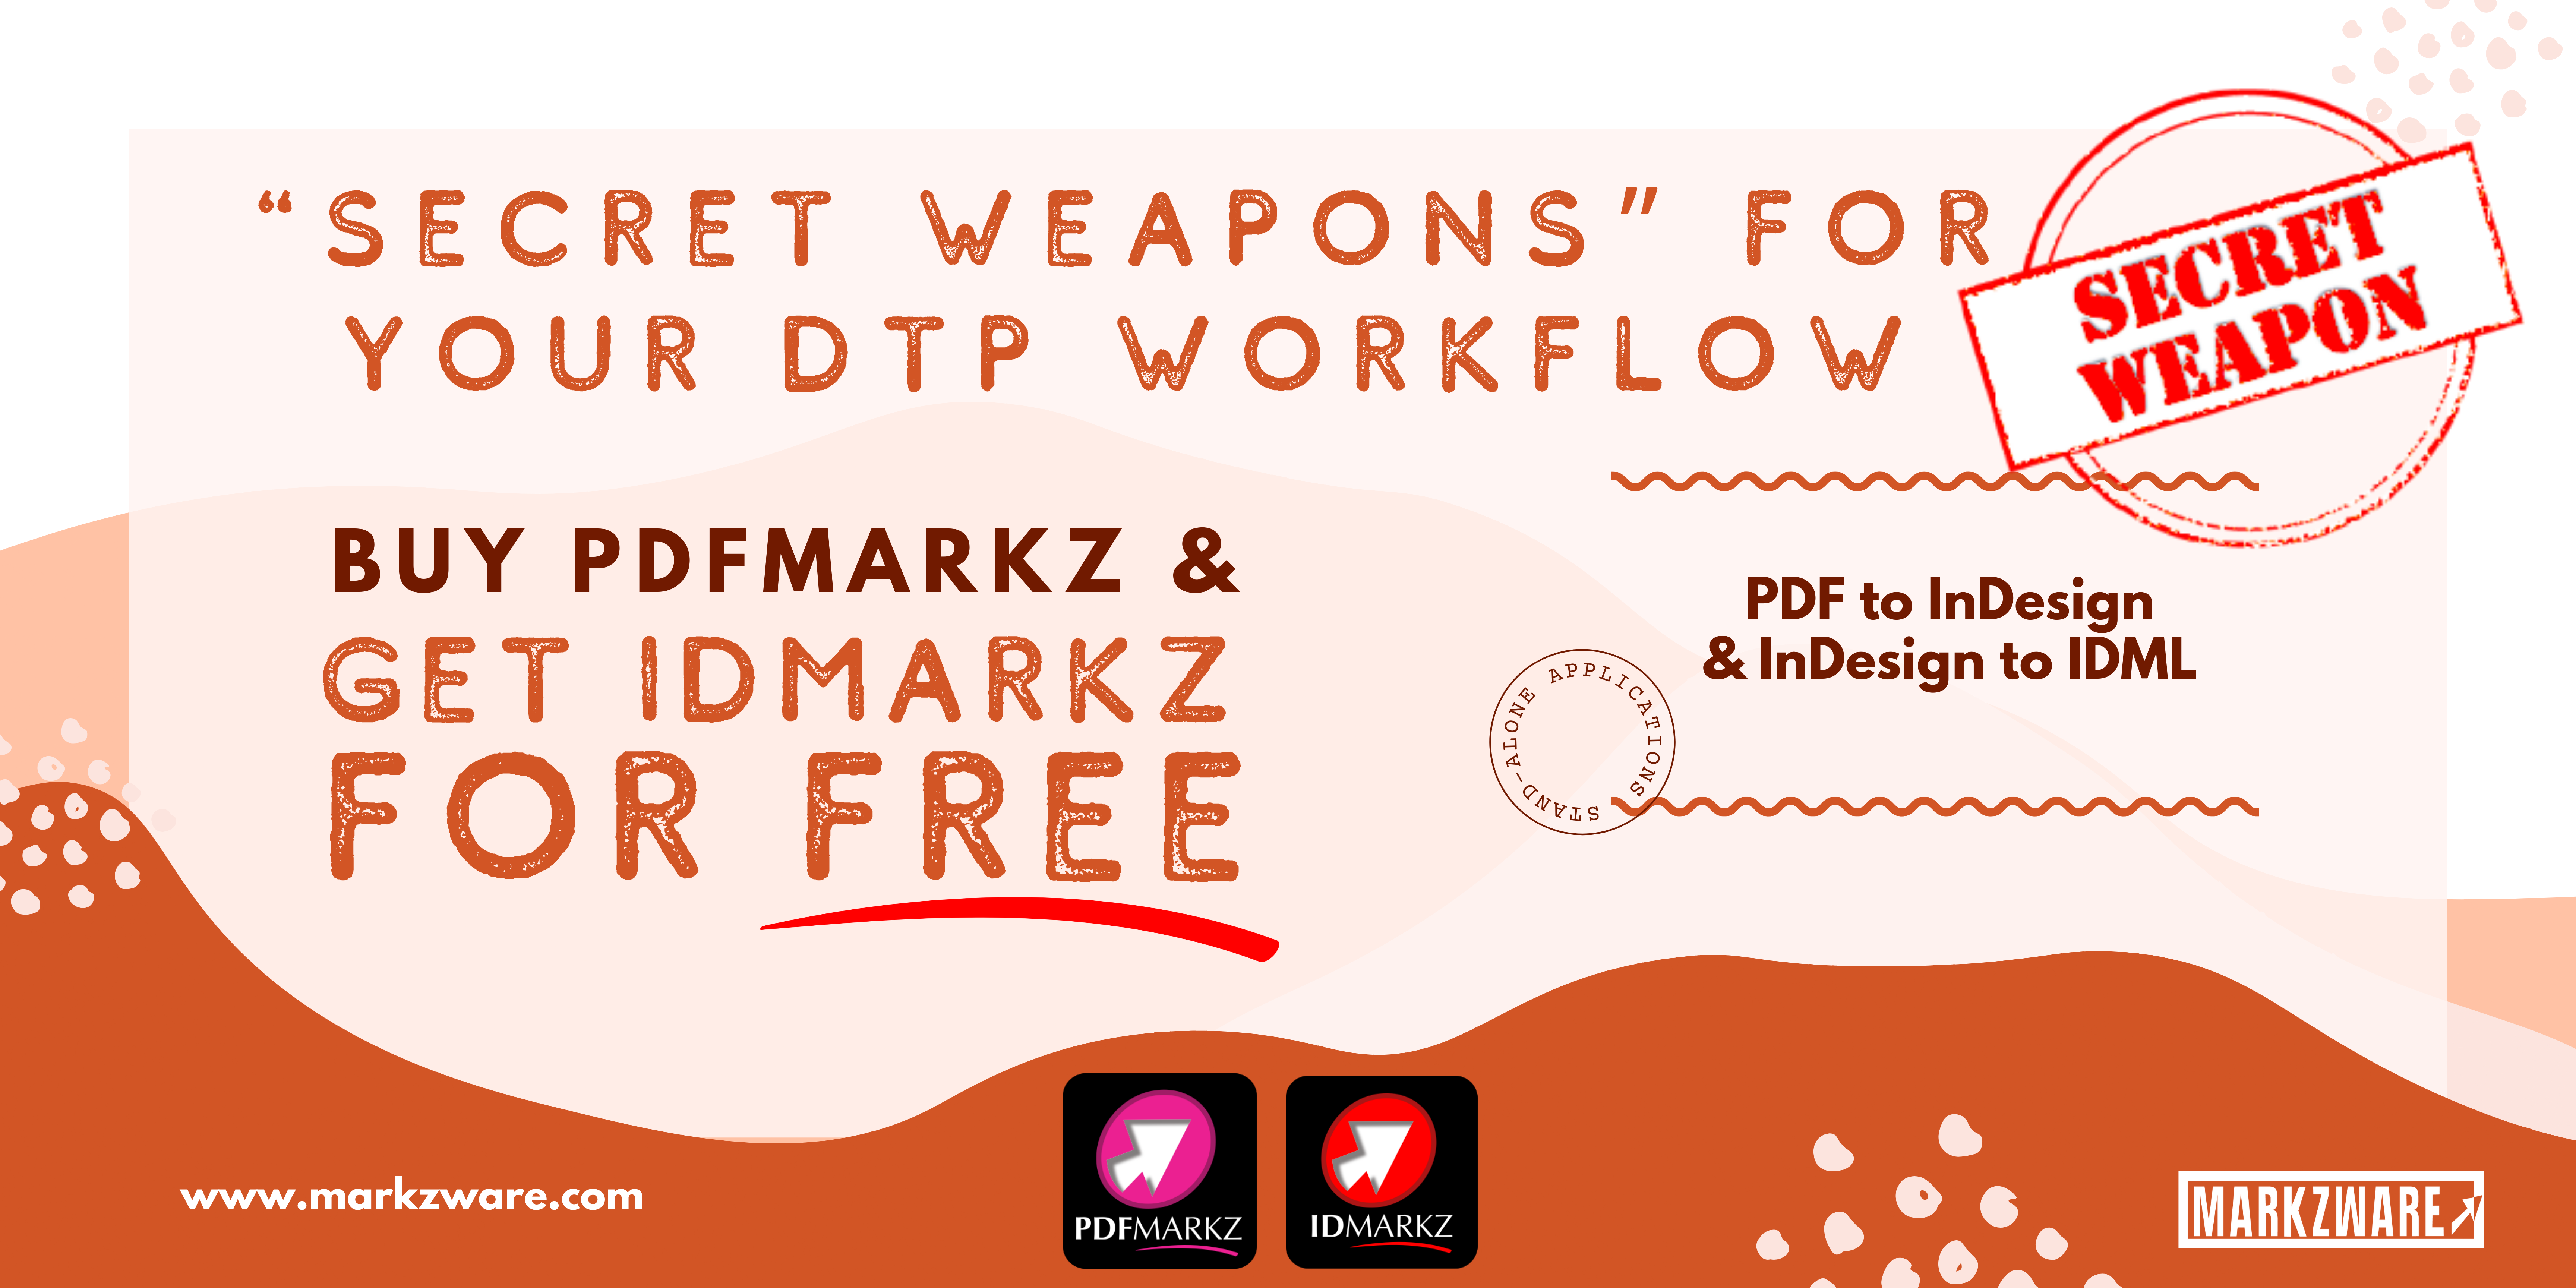 Secret weapons for your DTP workflow - Buy PDFMarkz get IDMarkz FREE banner